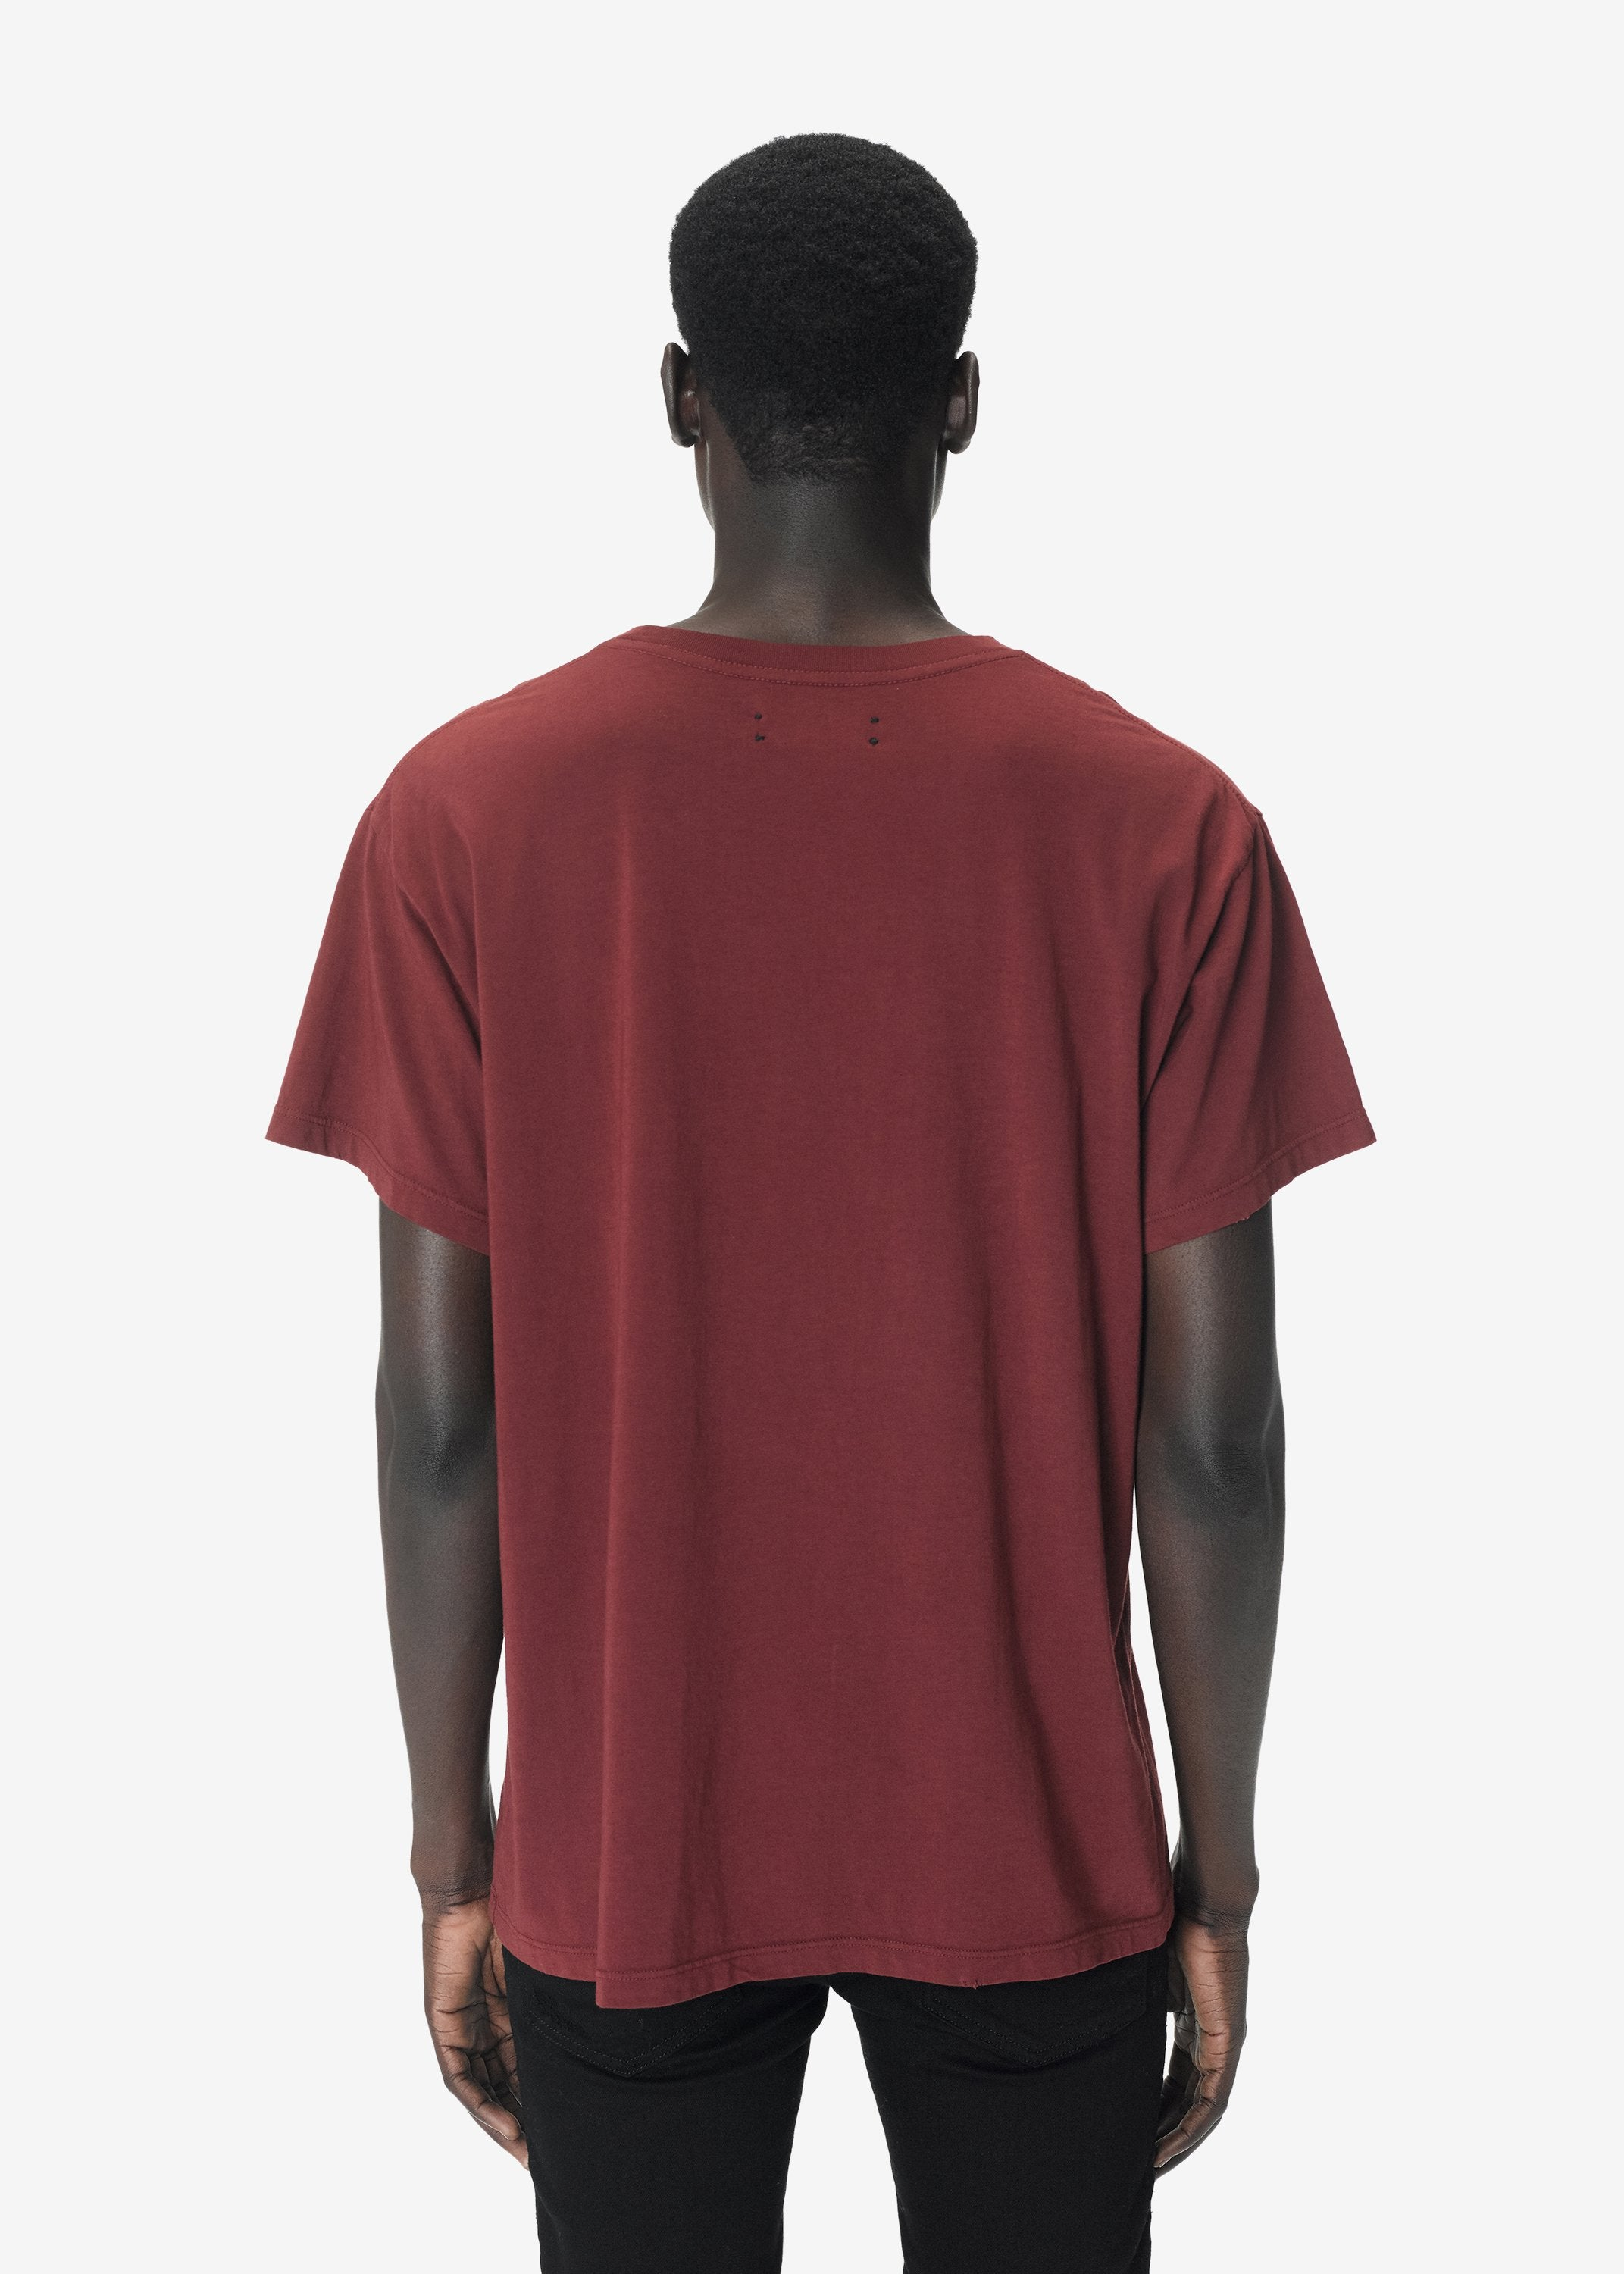 beverly-hills-tee-web-exclusive-burgundy-image-4